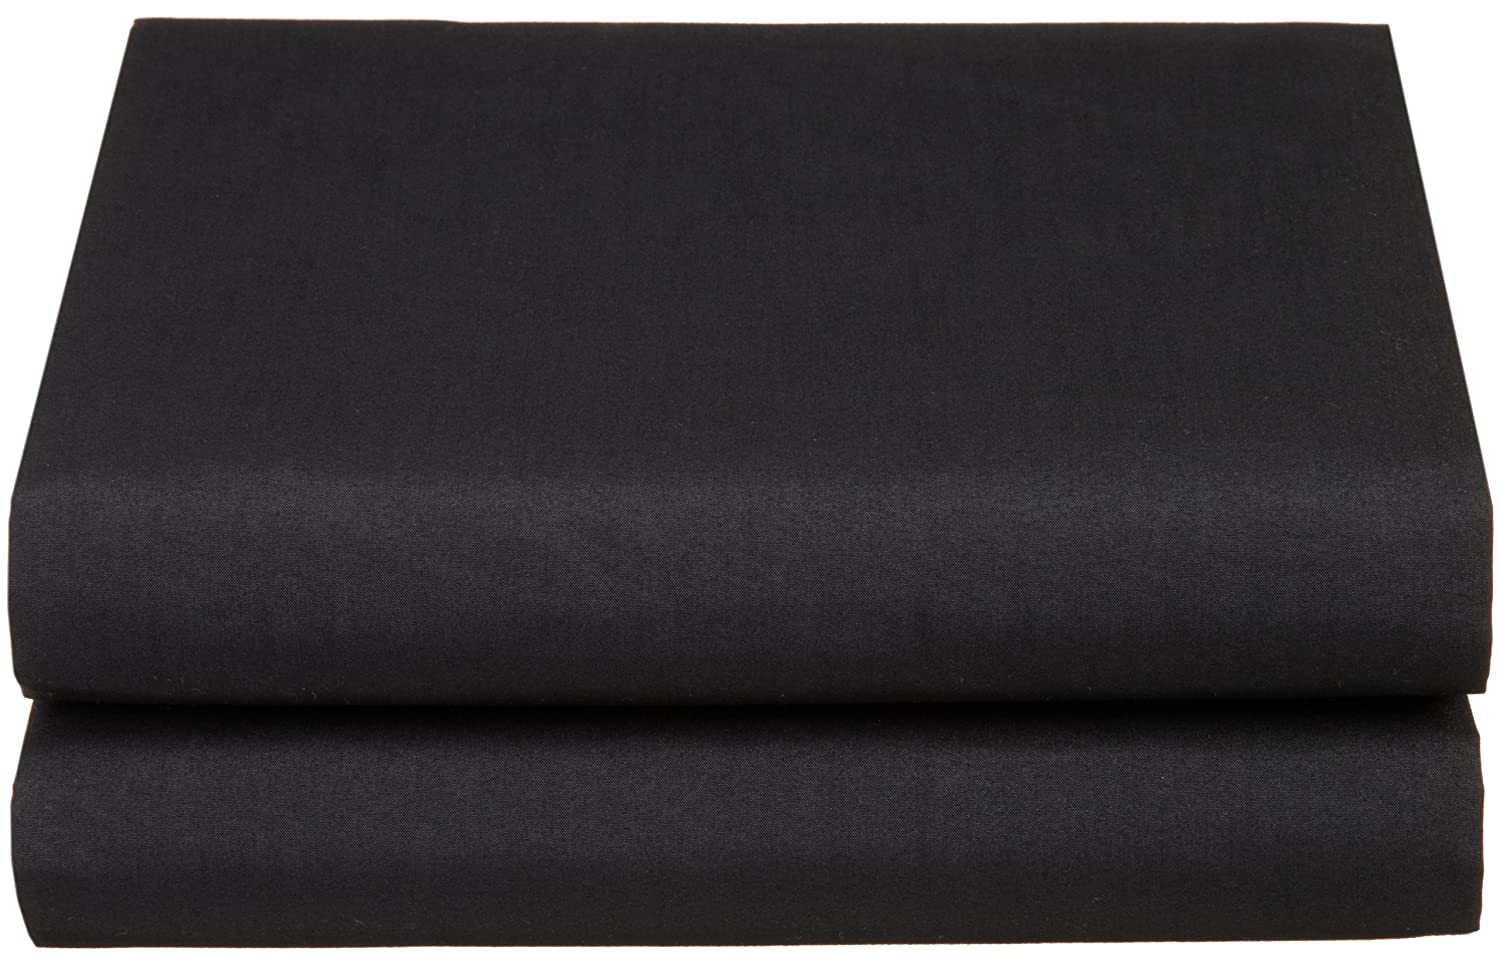 Cathay Luxury Silky Soft Polyester Single Fitted Sheet